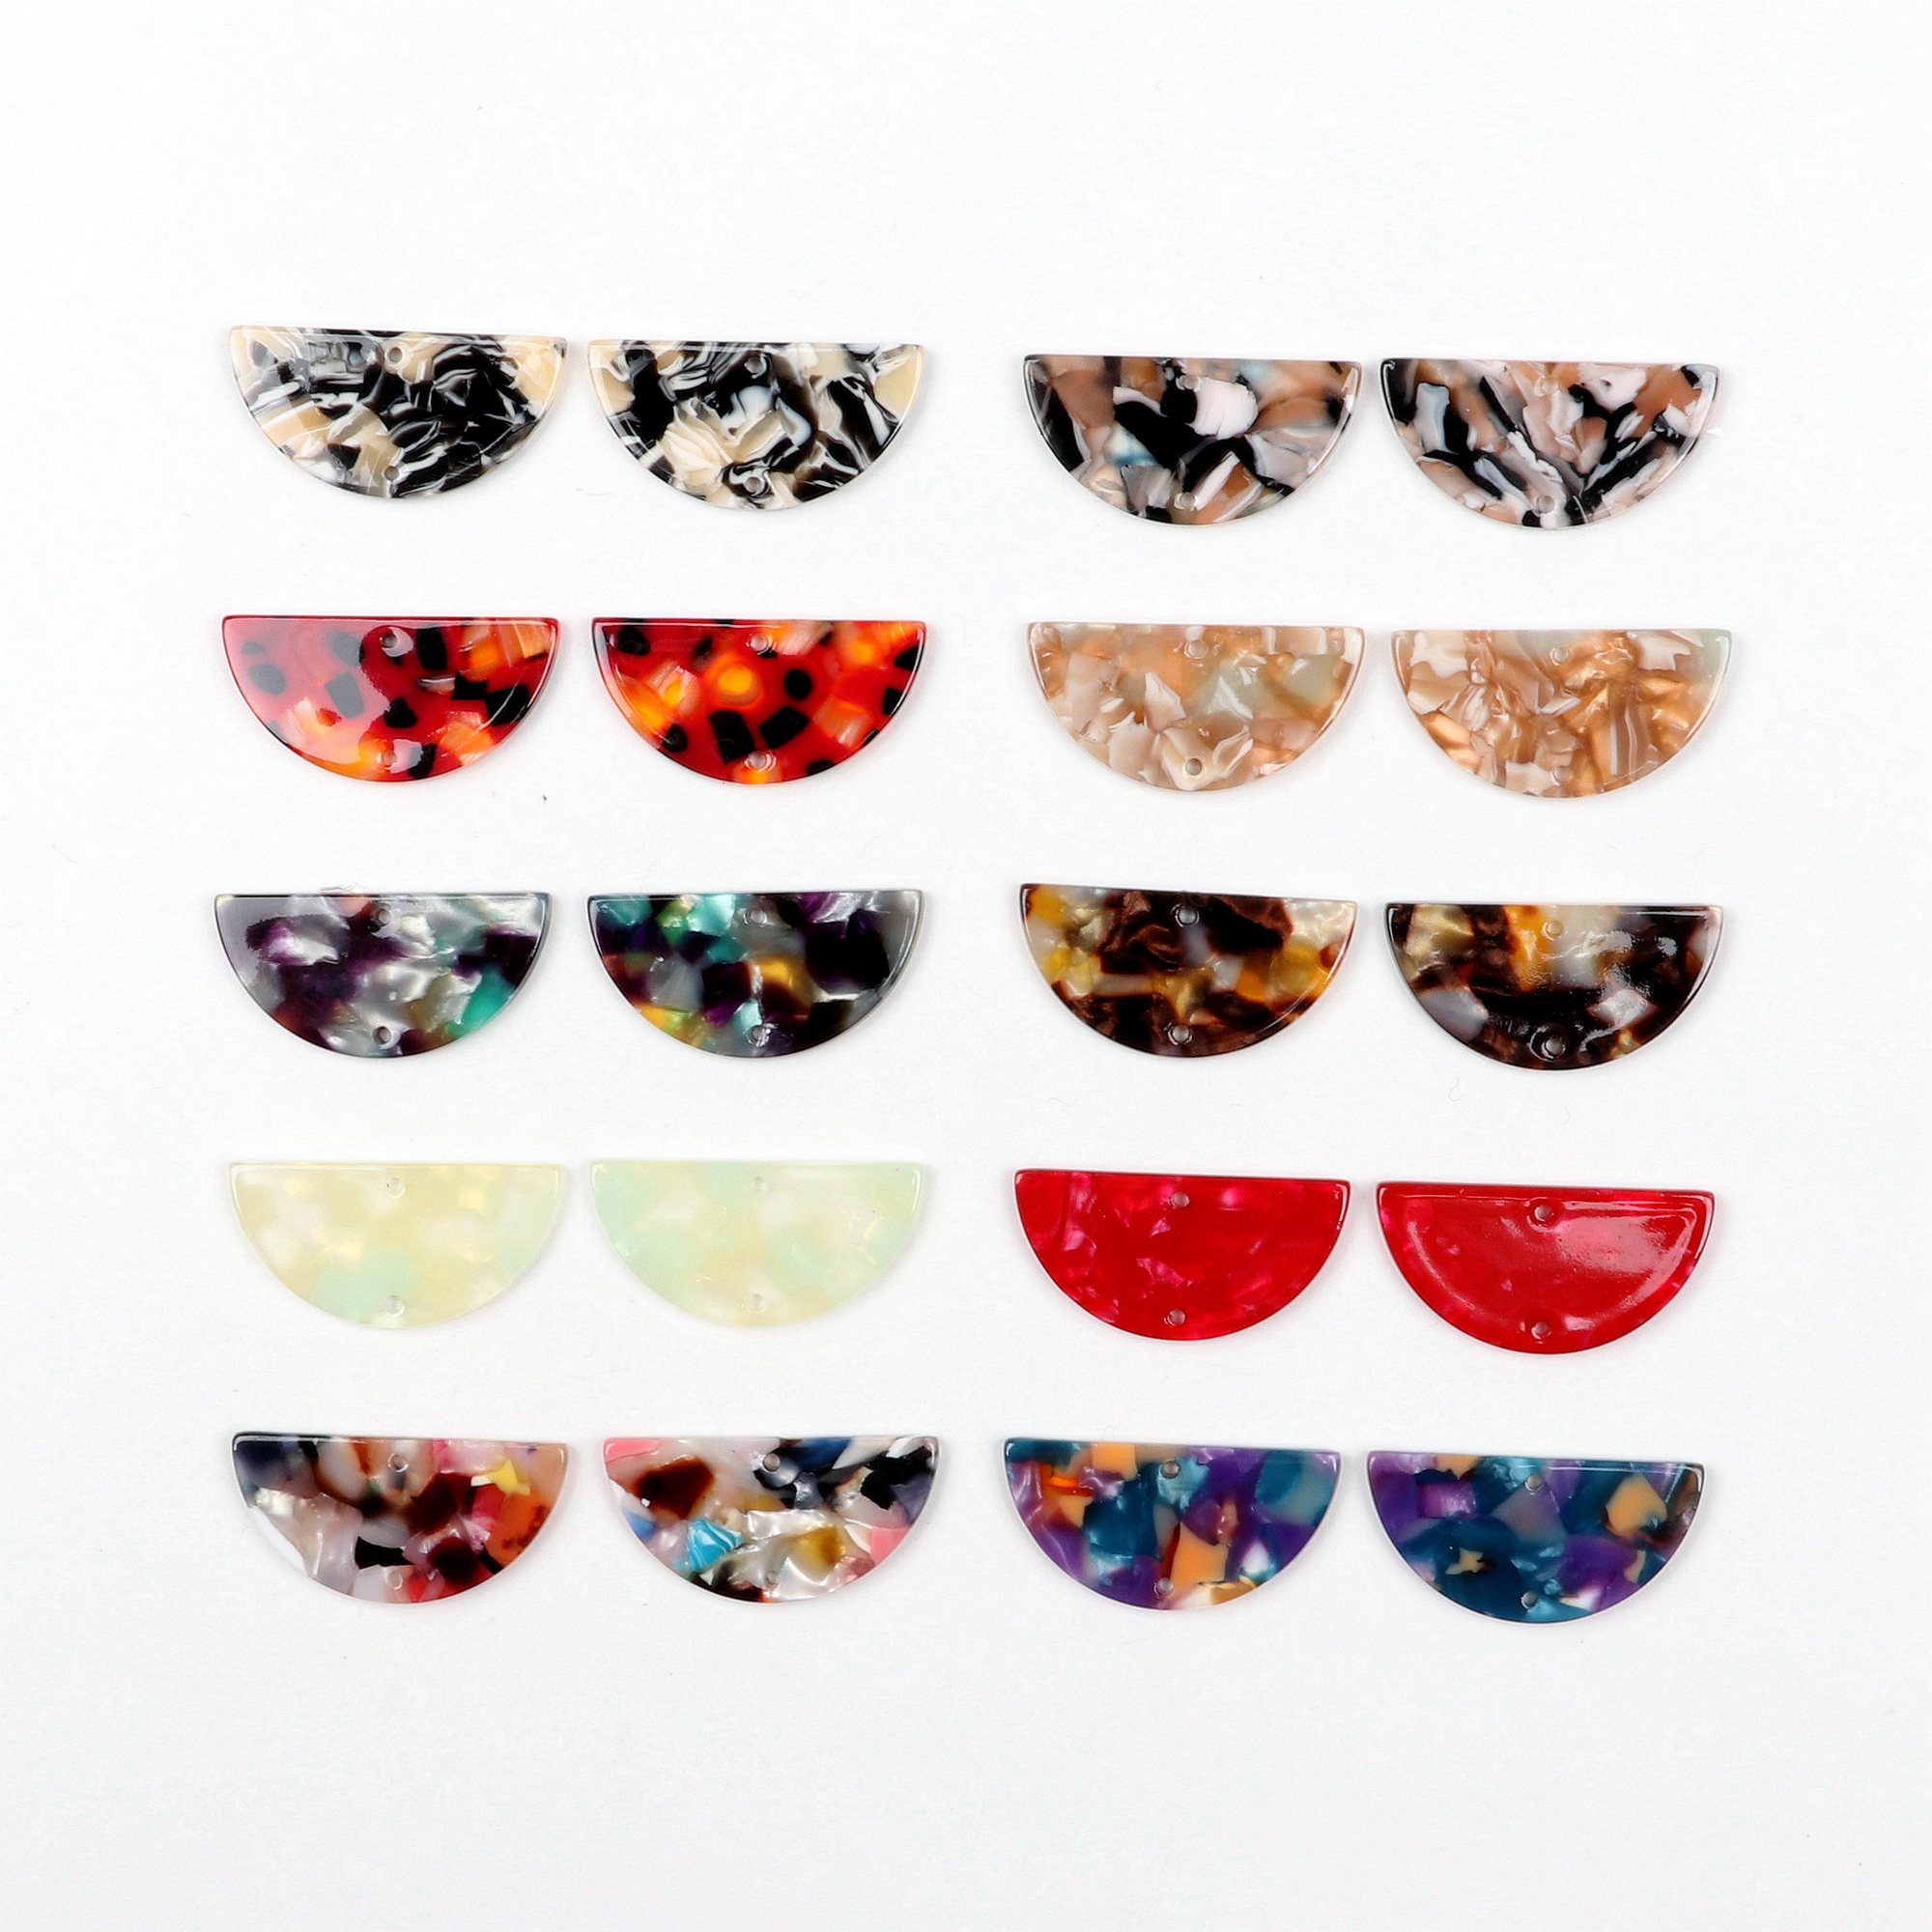 Tortoise Shell Beads,Acetate Acrylic Earring Charms,Half Round Shaped Pendant,Semicircle Pendant,1 Hole,Earring Parts,15x30mm,A344-ACE278C